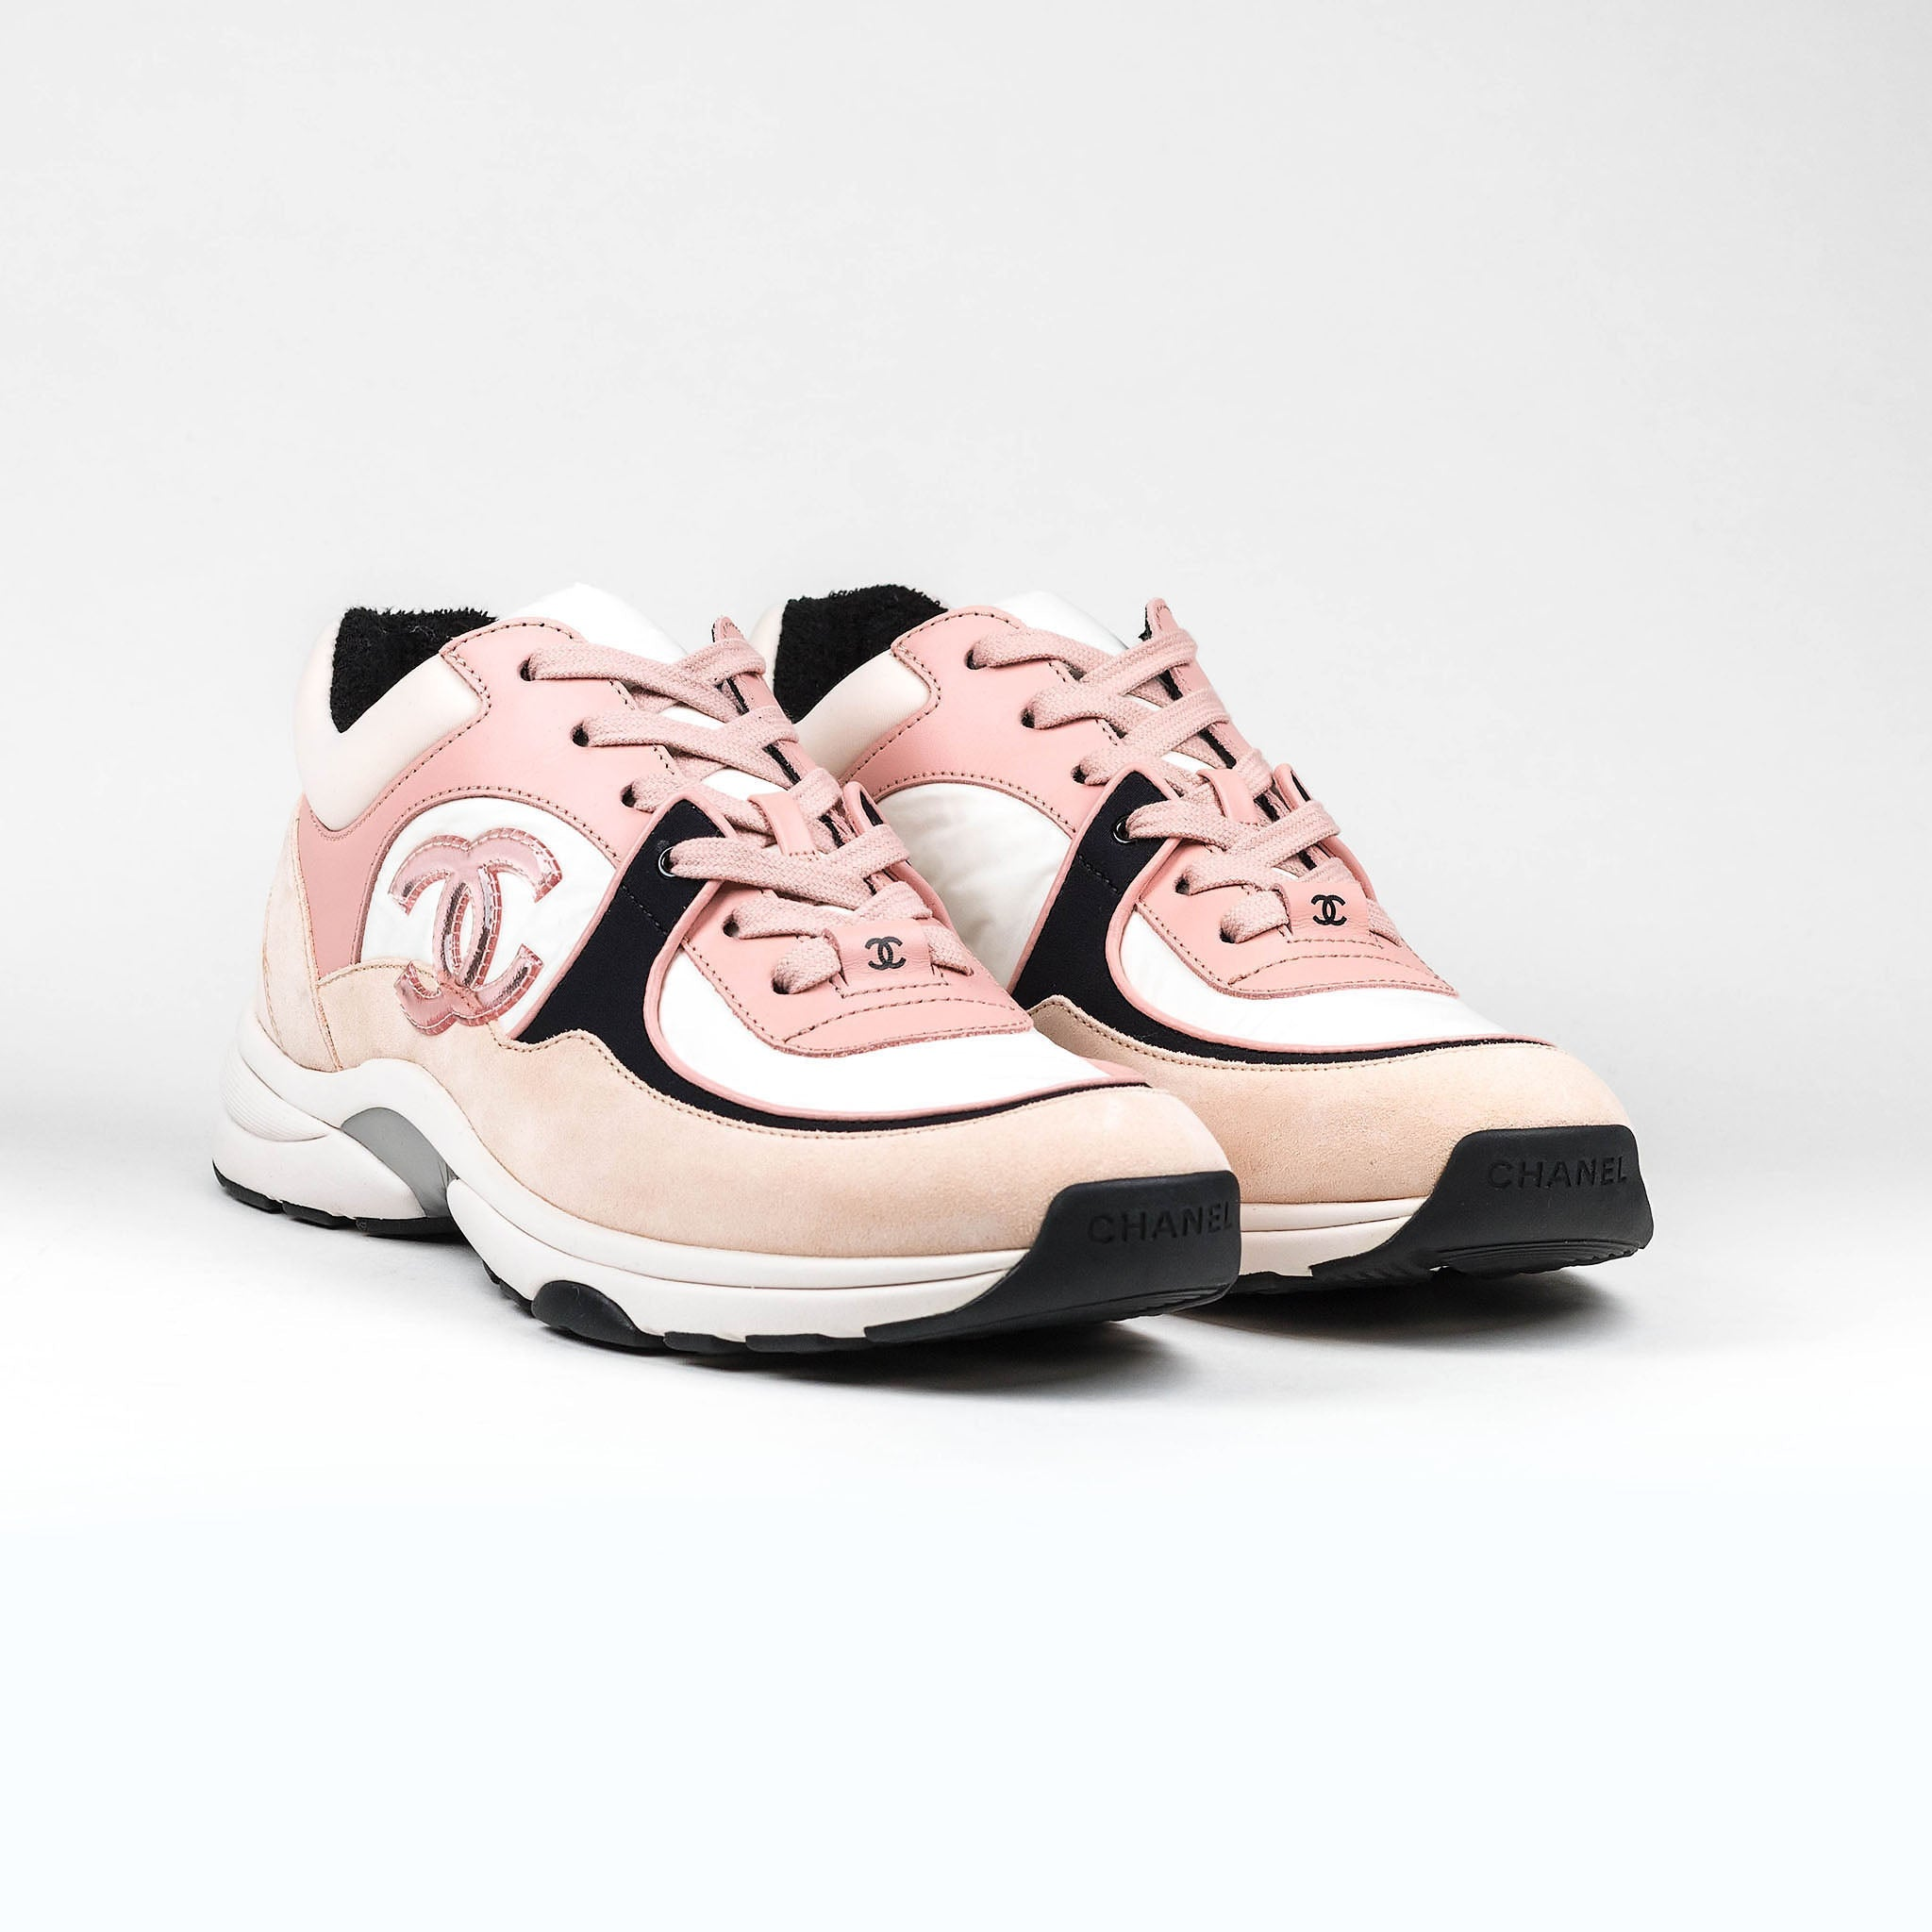 chanel tennis shoes pink